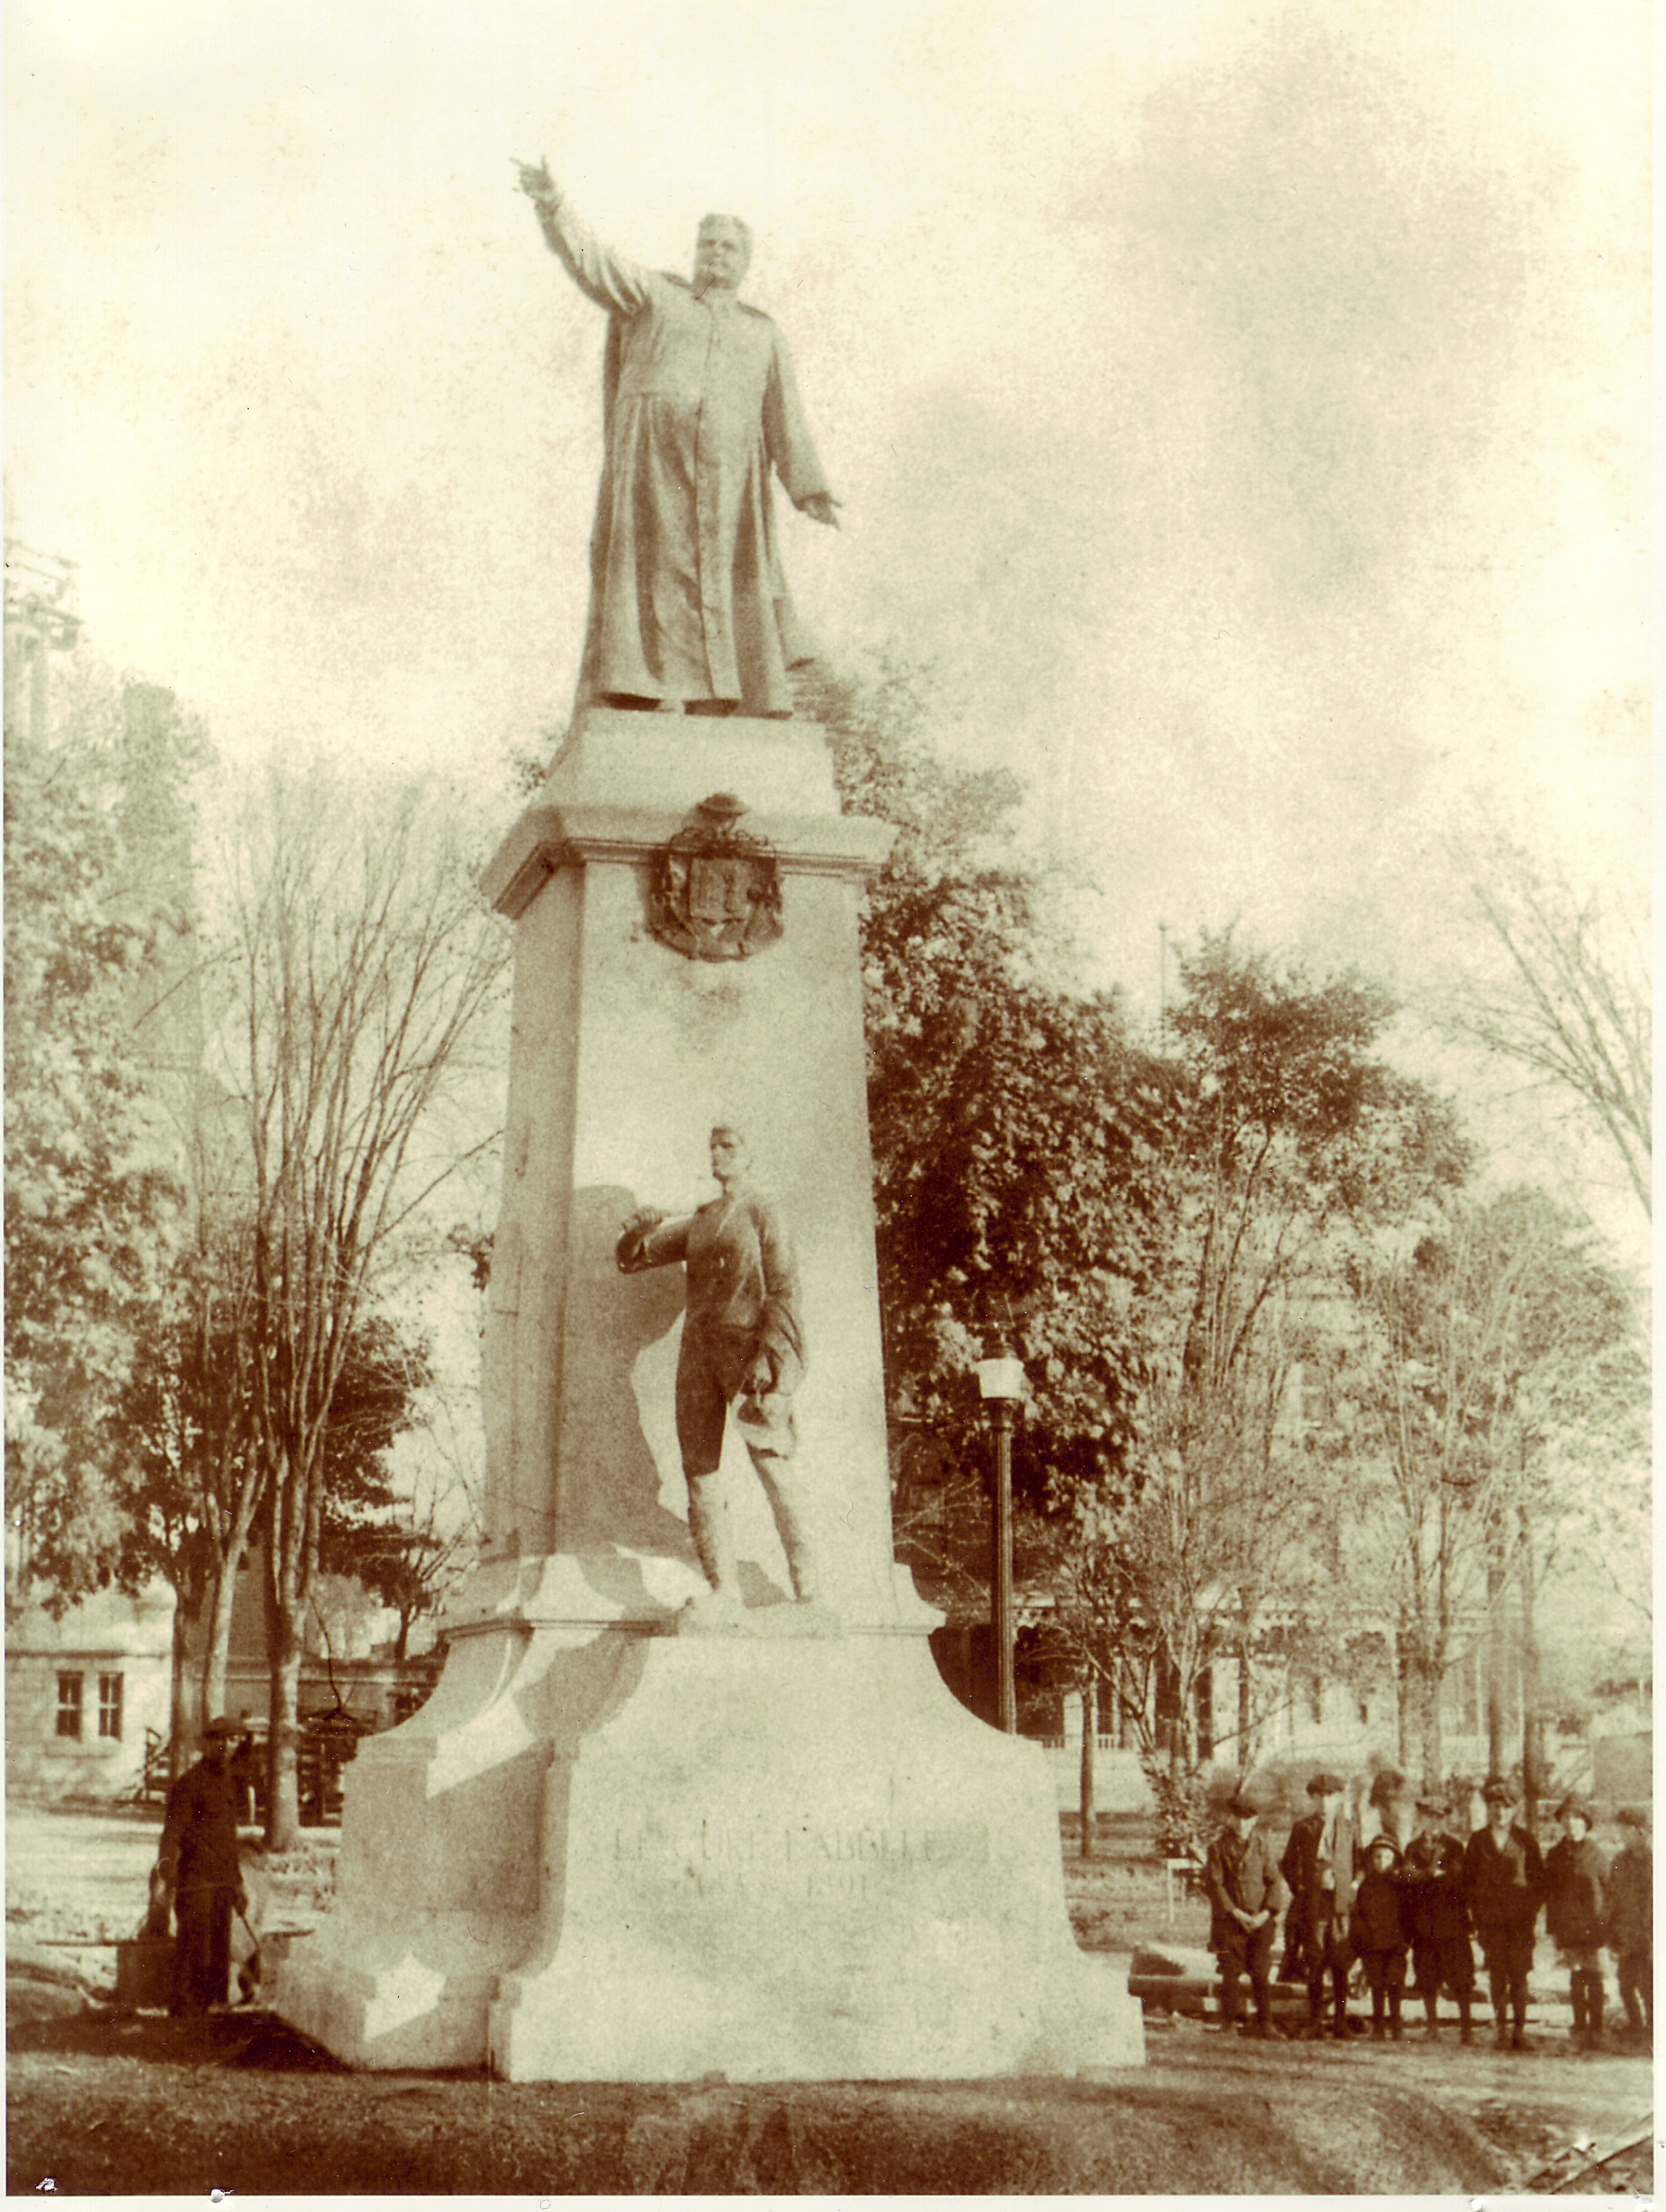 Black & white photograph of a statue of Curé Labelle pointing northward. The statue stands on an imposing pedestal. Below Labelle's feet is his coat of arms, and lower still, a smaller bronze statue of a pioneer. A man and his children are seen standing by the pedestal.